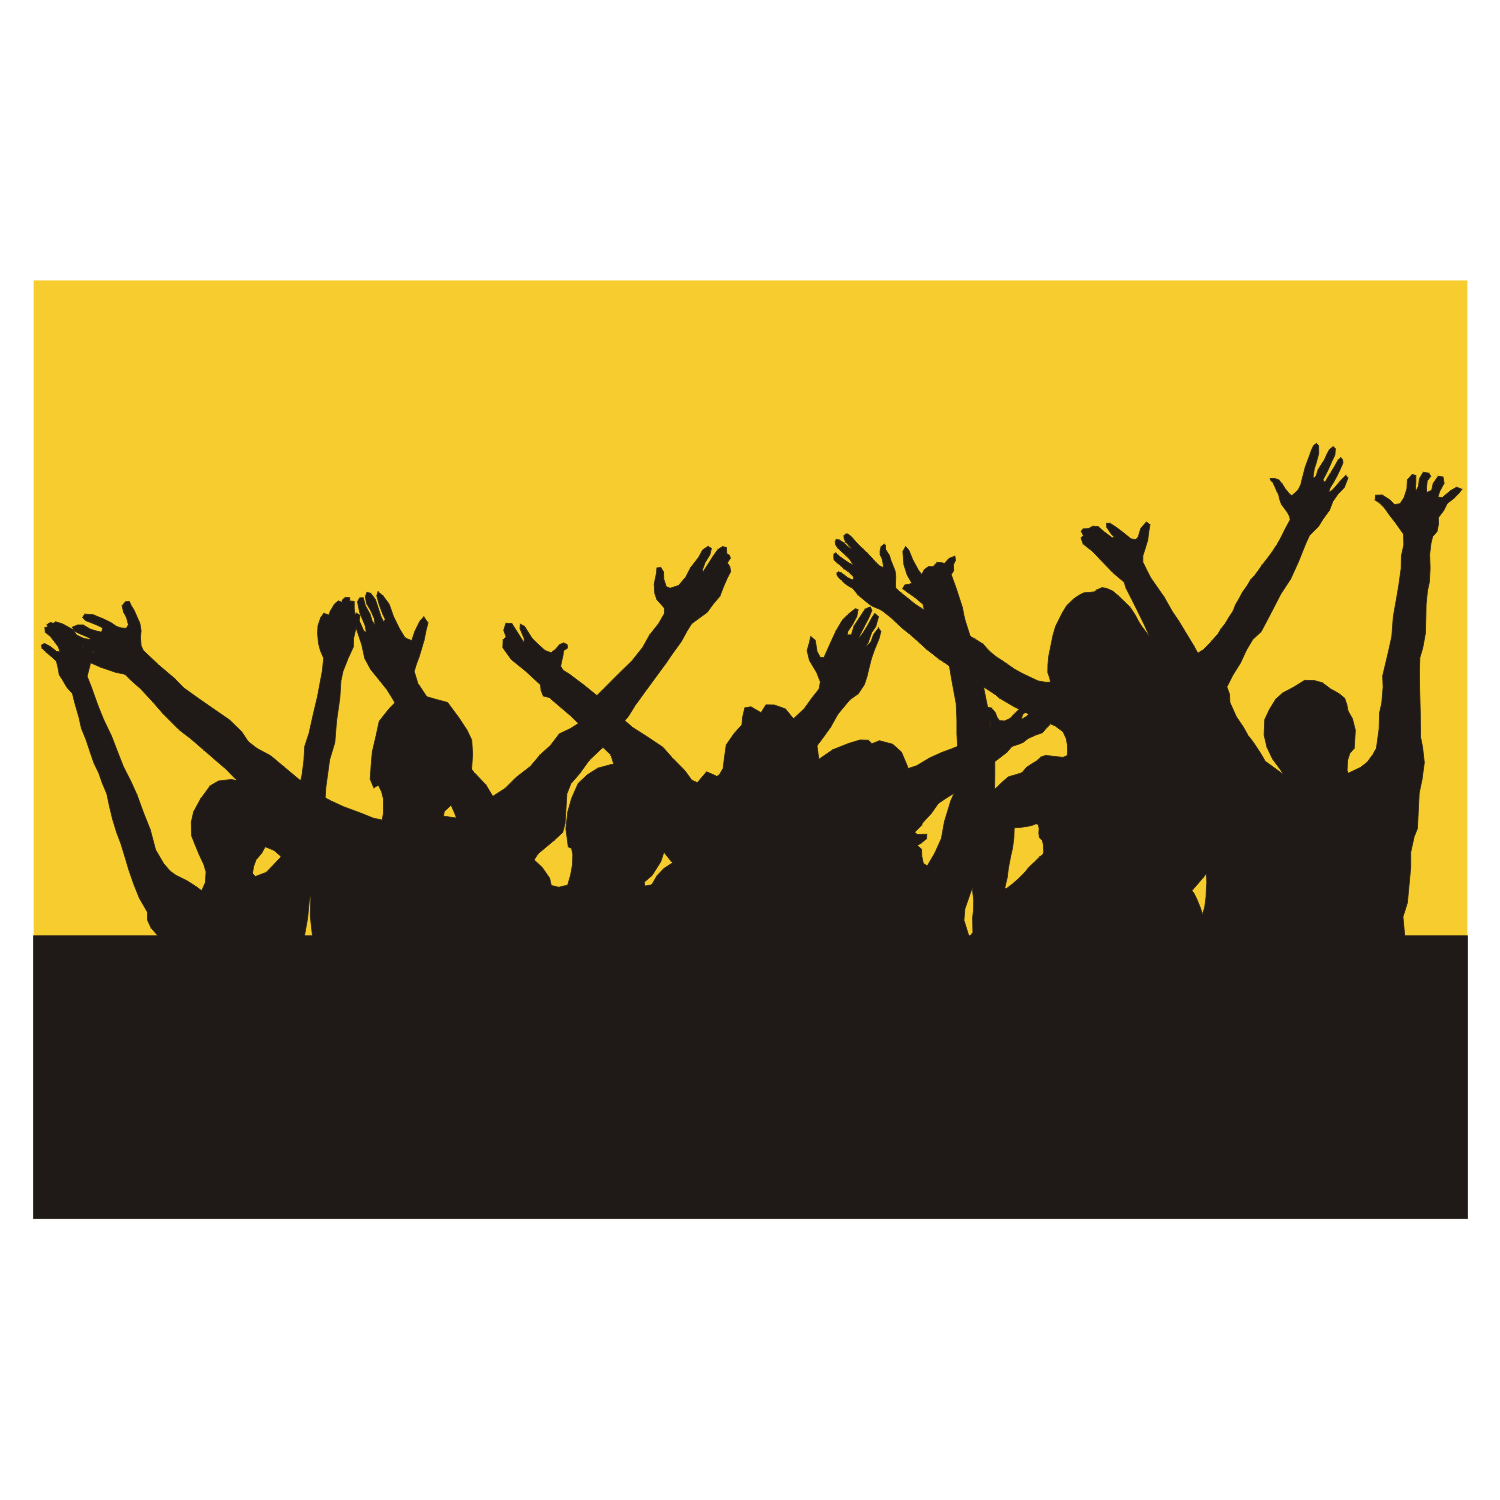 1500x1500 Vector For Free Use Hands Up Silhouettes